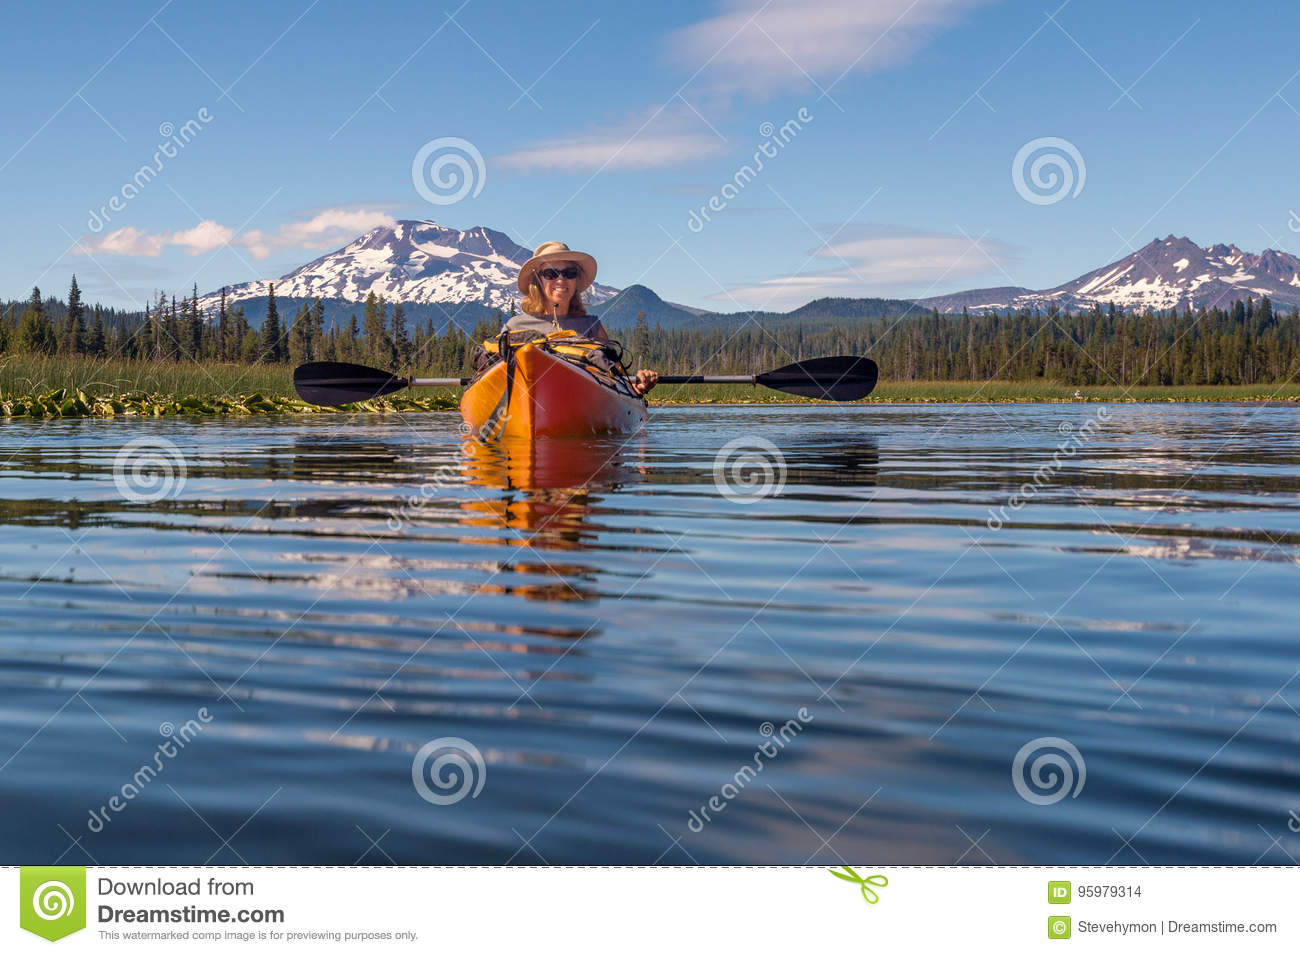 Woman kayaking on mountain lake near Bend, Oregon